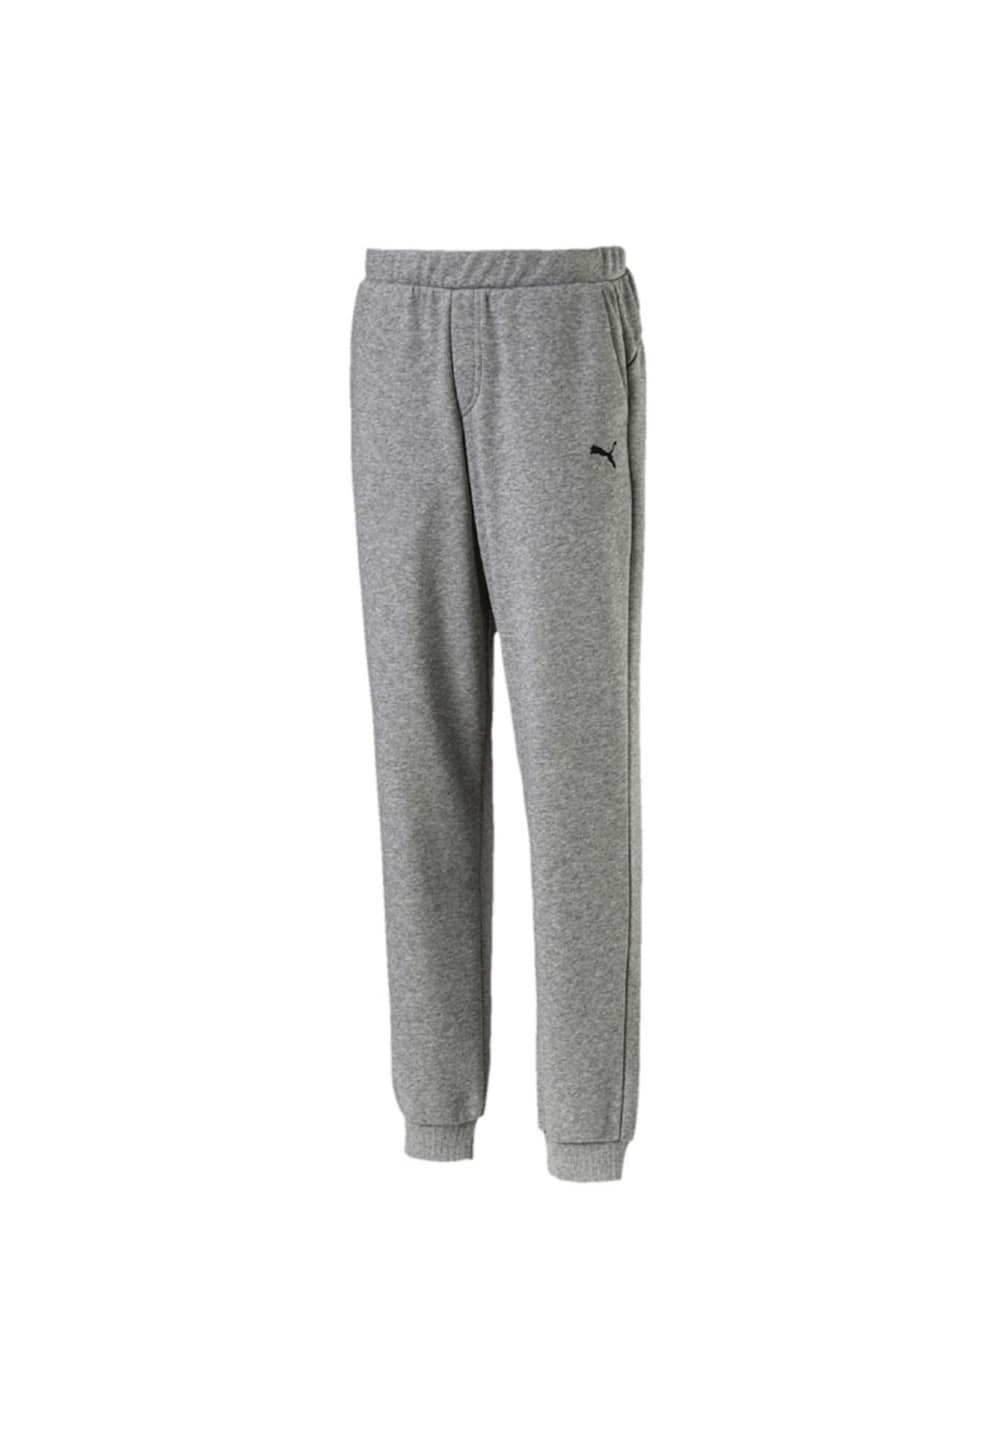 Puma Essential Sweat Pants Closed - Fitnesshosen für Herren - Grau